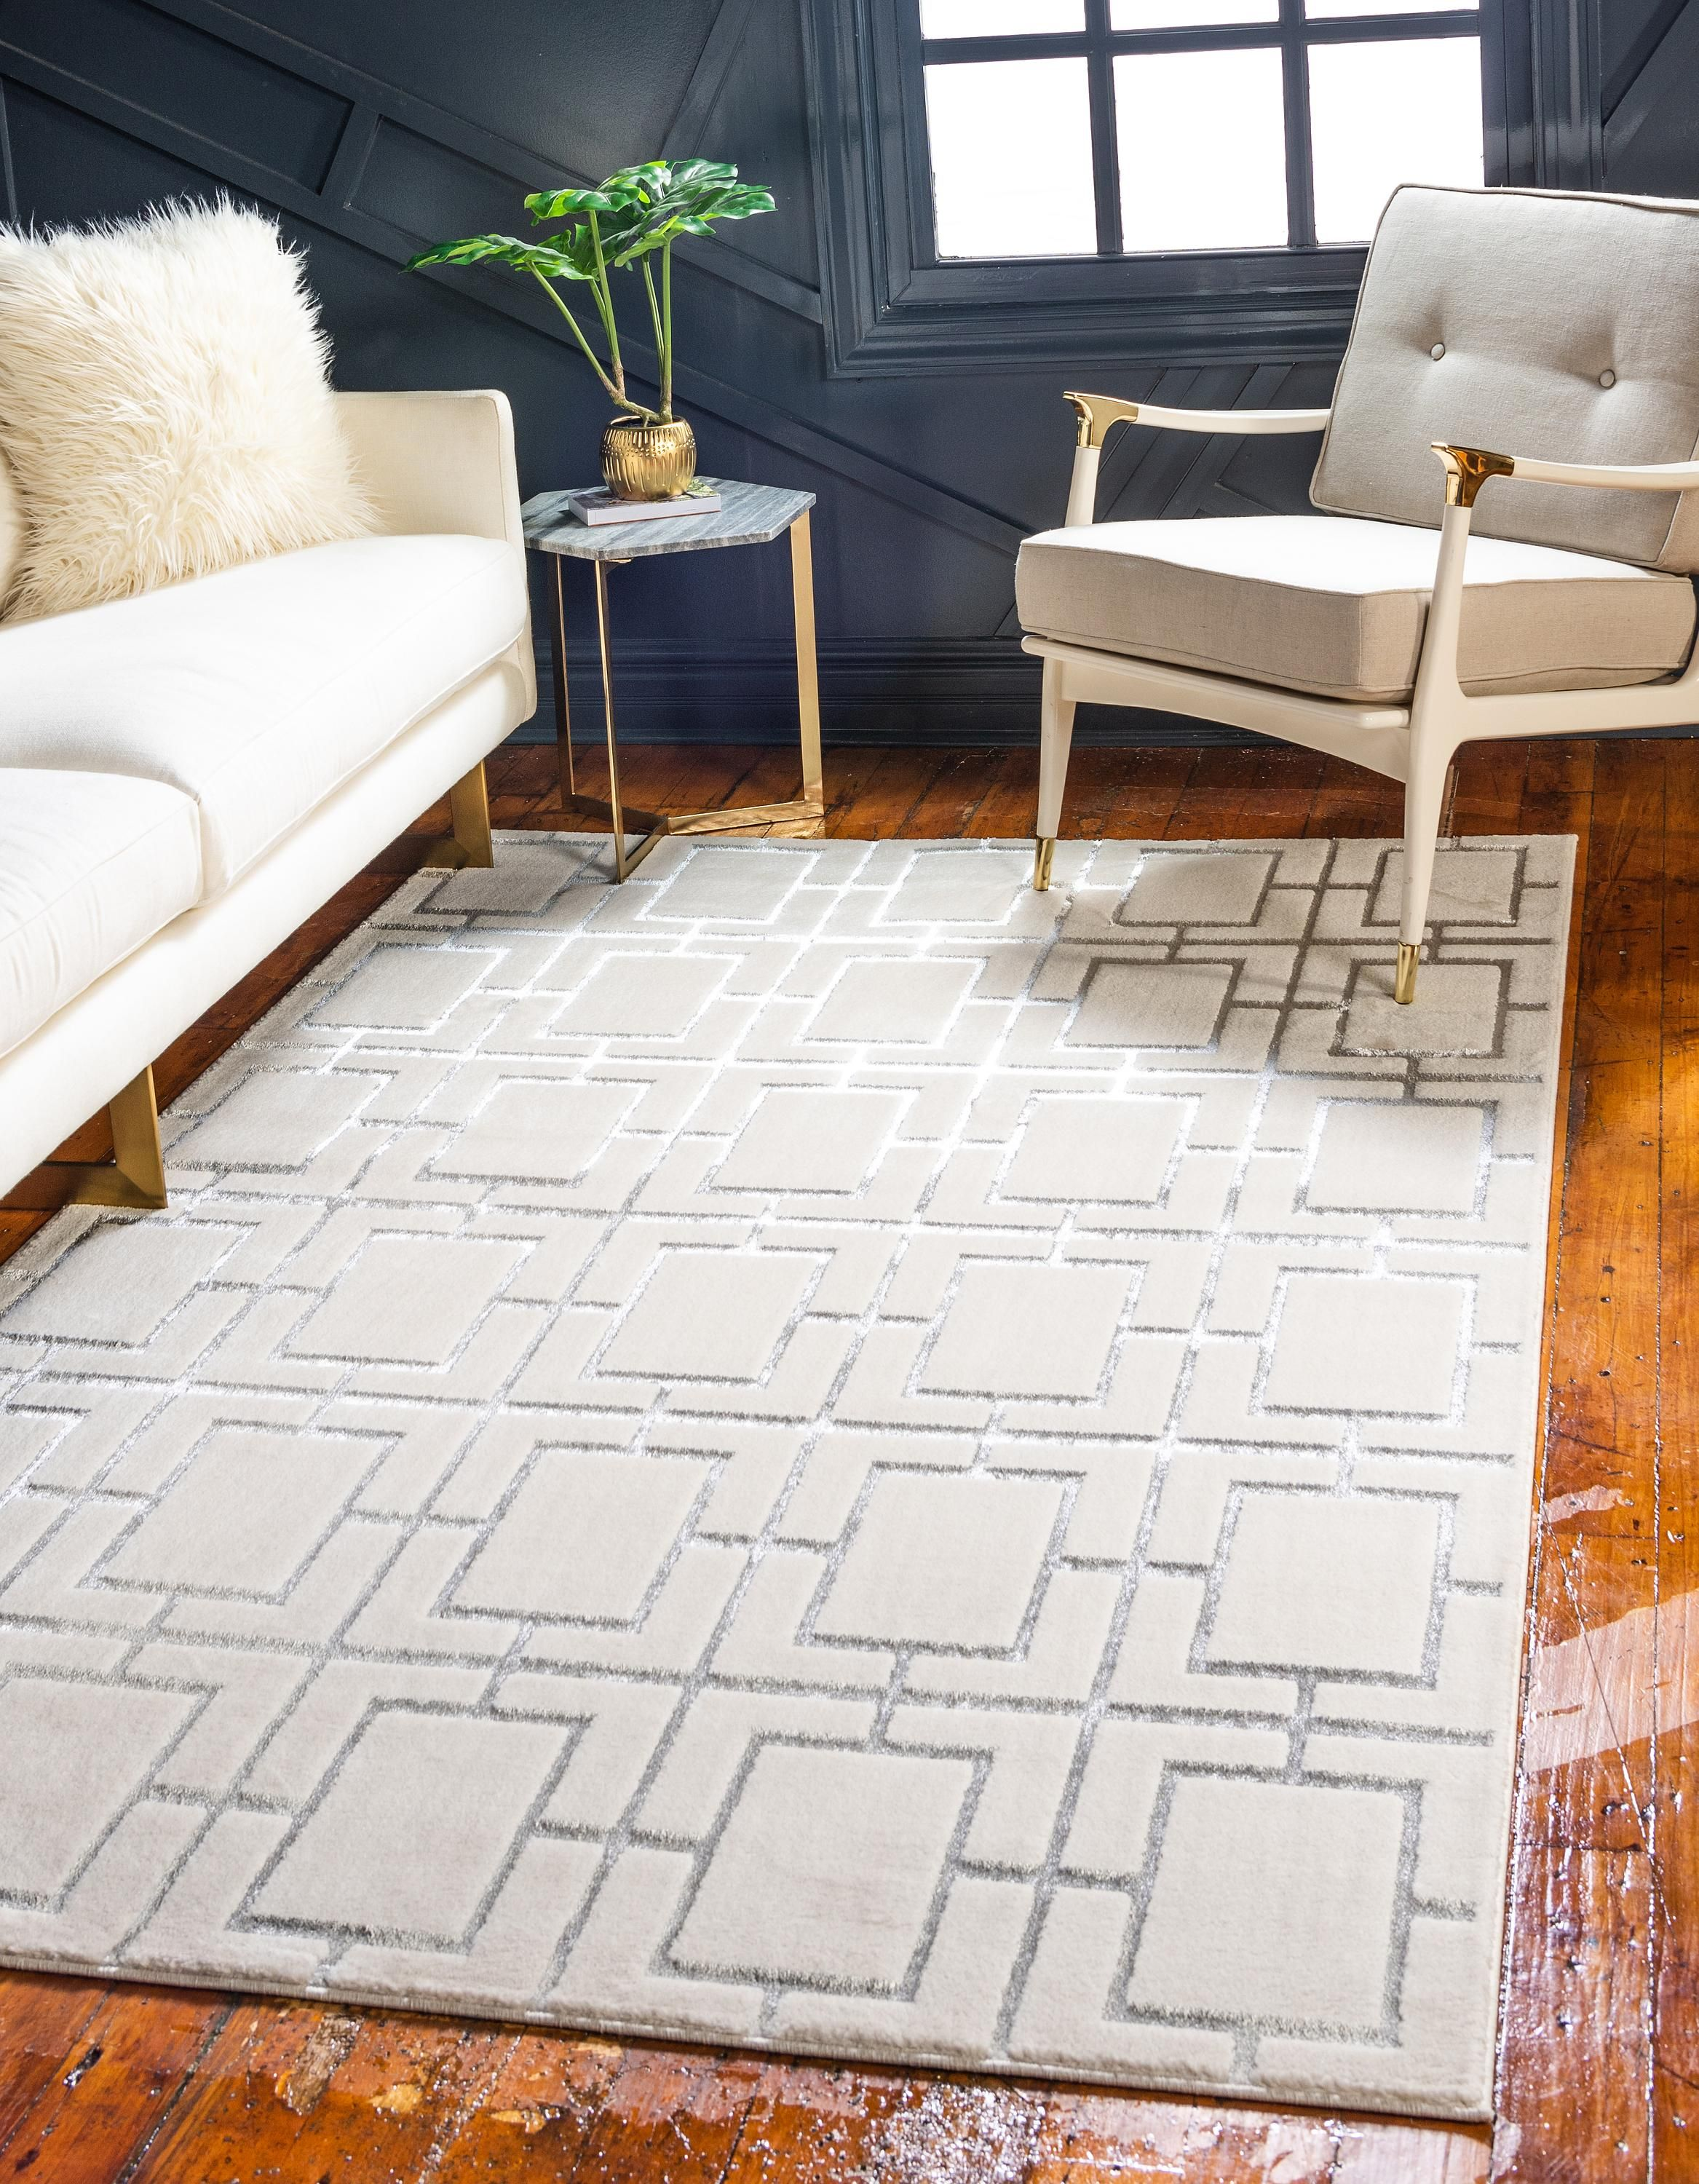 White Silver 152cm X 245cm Marilyn Monroe Glam Deco Rug Area Rugs Irugs Singapore Glam House Area Rugs Classic Rugs